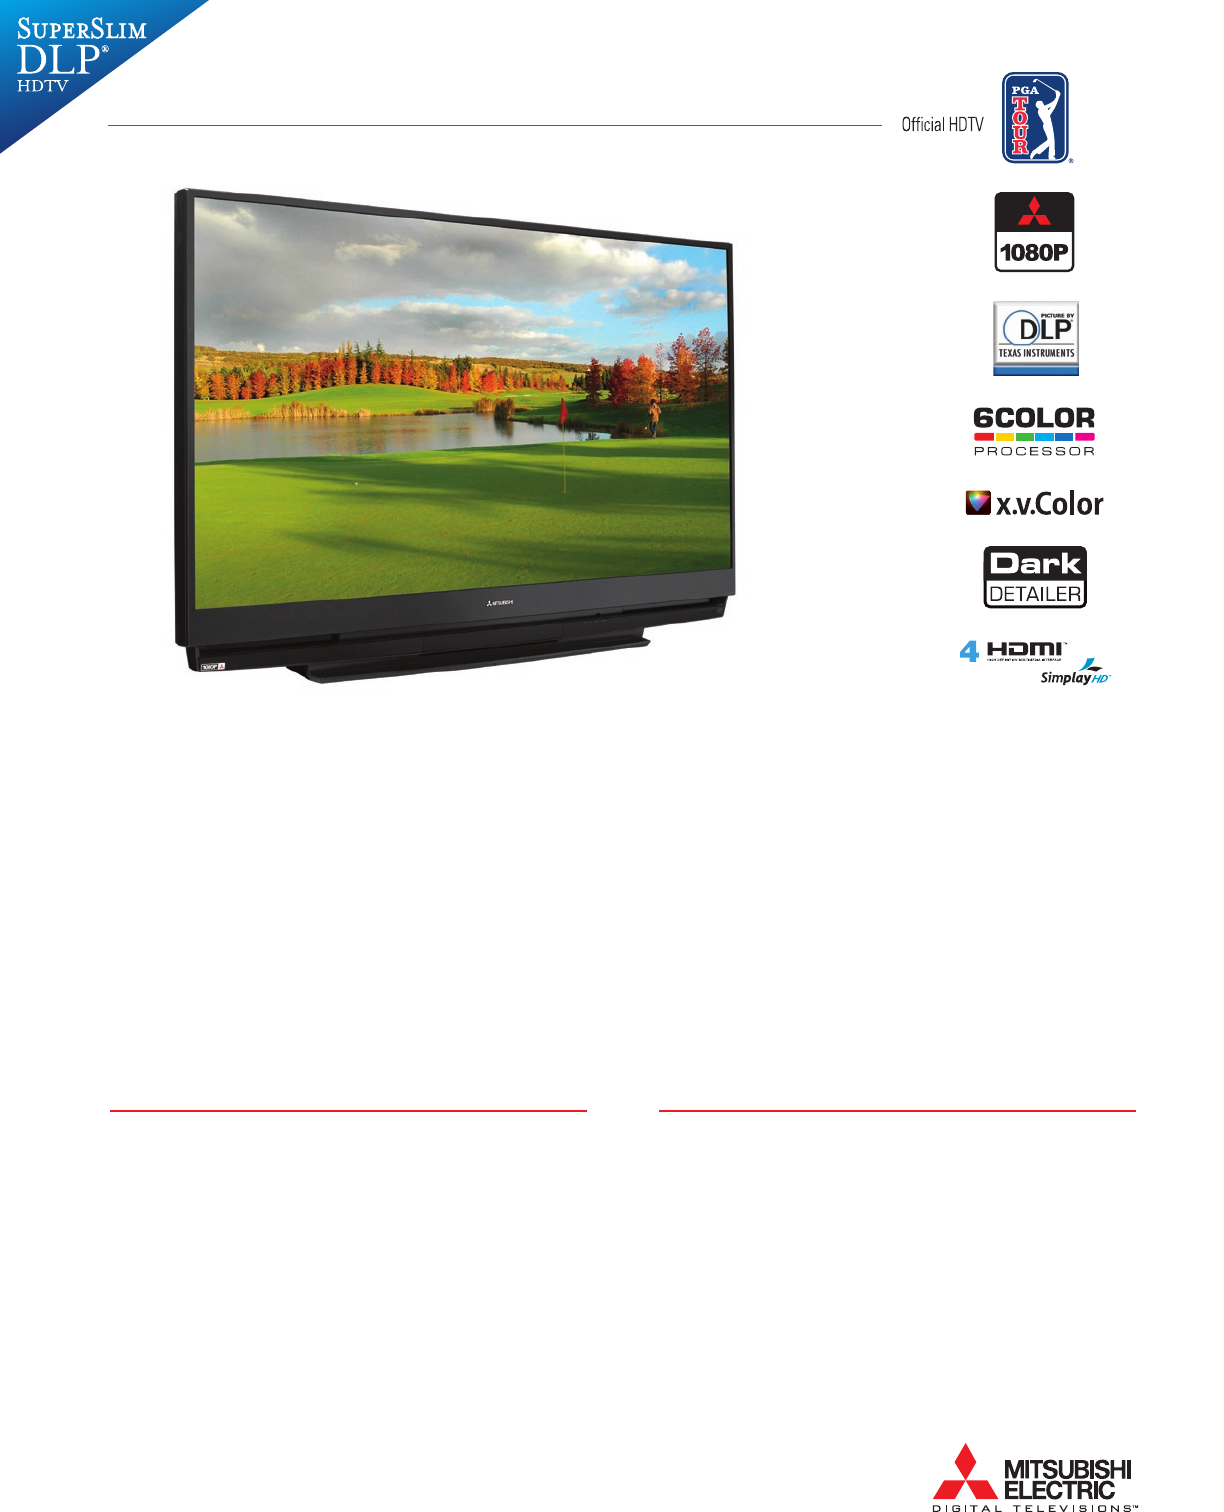 Mitsubishi 60 Inch Projection Tv Manual Car Schematic Dlp Projector Various Owner Guide